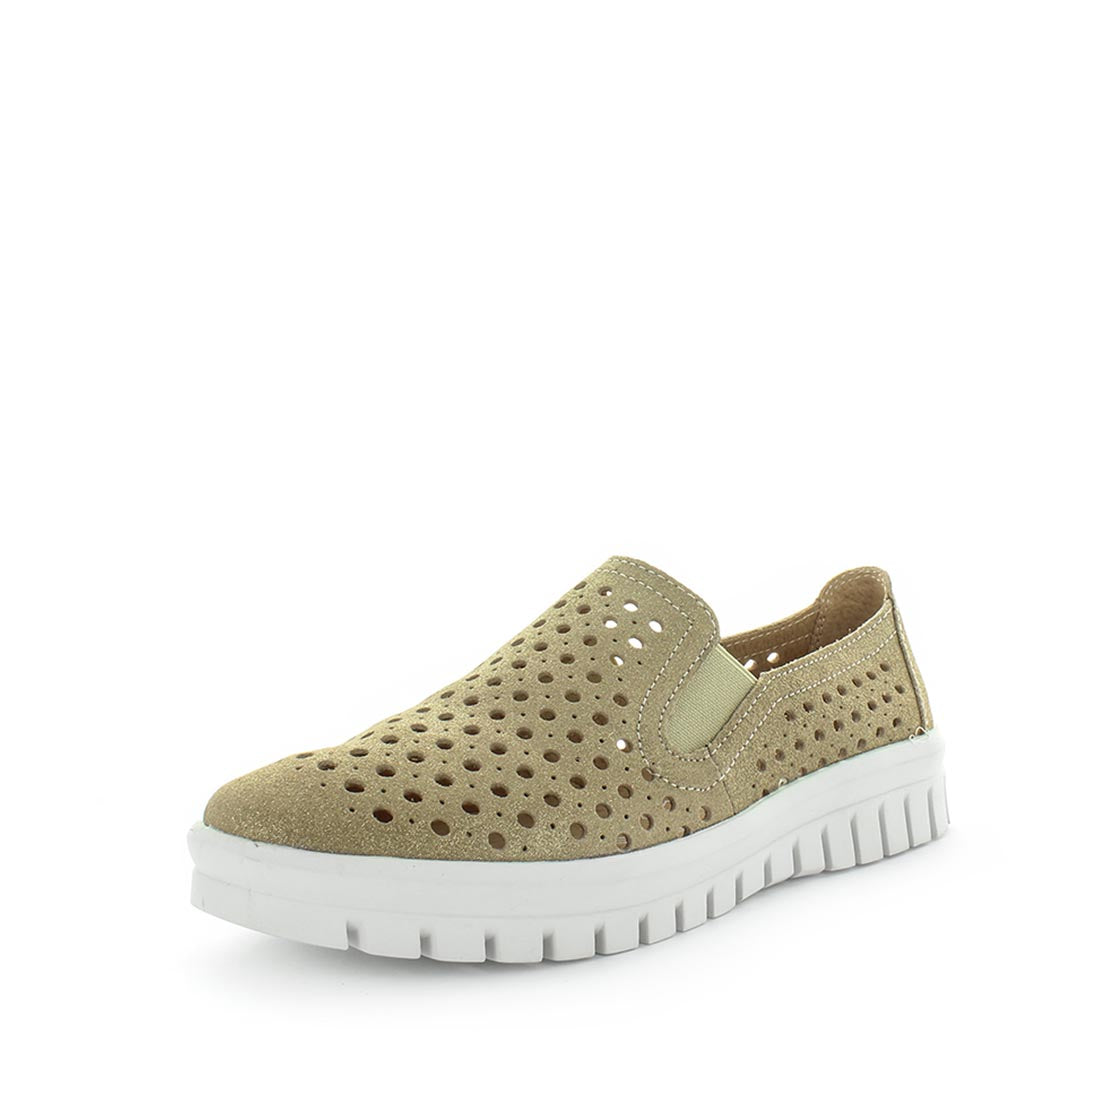 womens comfort shoes, womens shoes, womens leather affordable shoes, Just Bee cotta -Latte, leather womens shoe withcomfort insoles. the perfect women's shoe for all occasions. laser cut upper detail